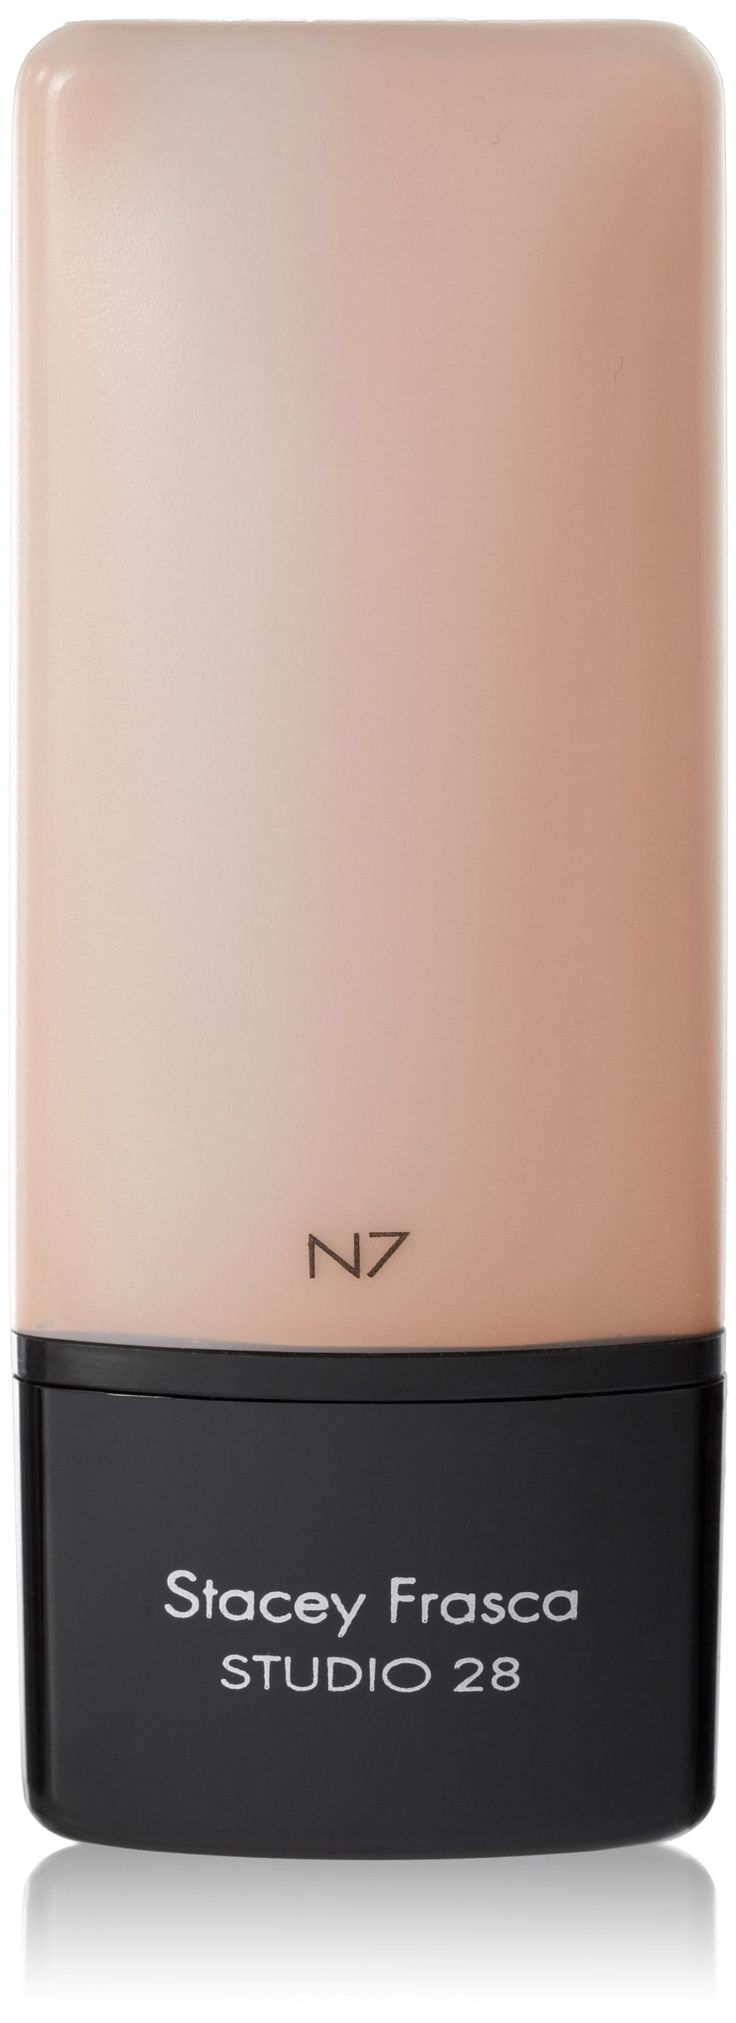 Stacey Frasca Studio 28 Mousse Foundation, N7, 1.01 fl. oz.